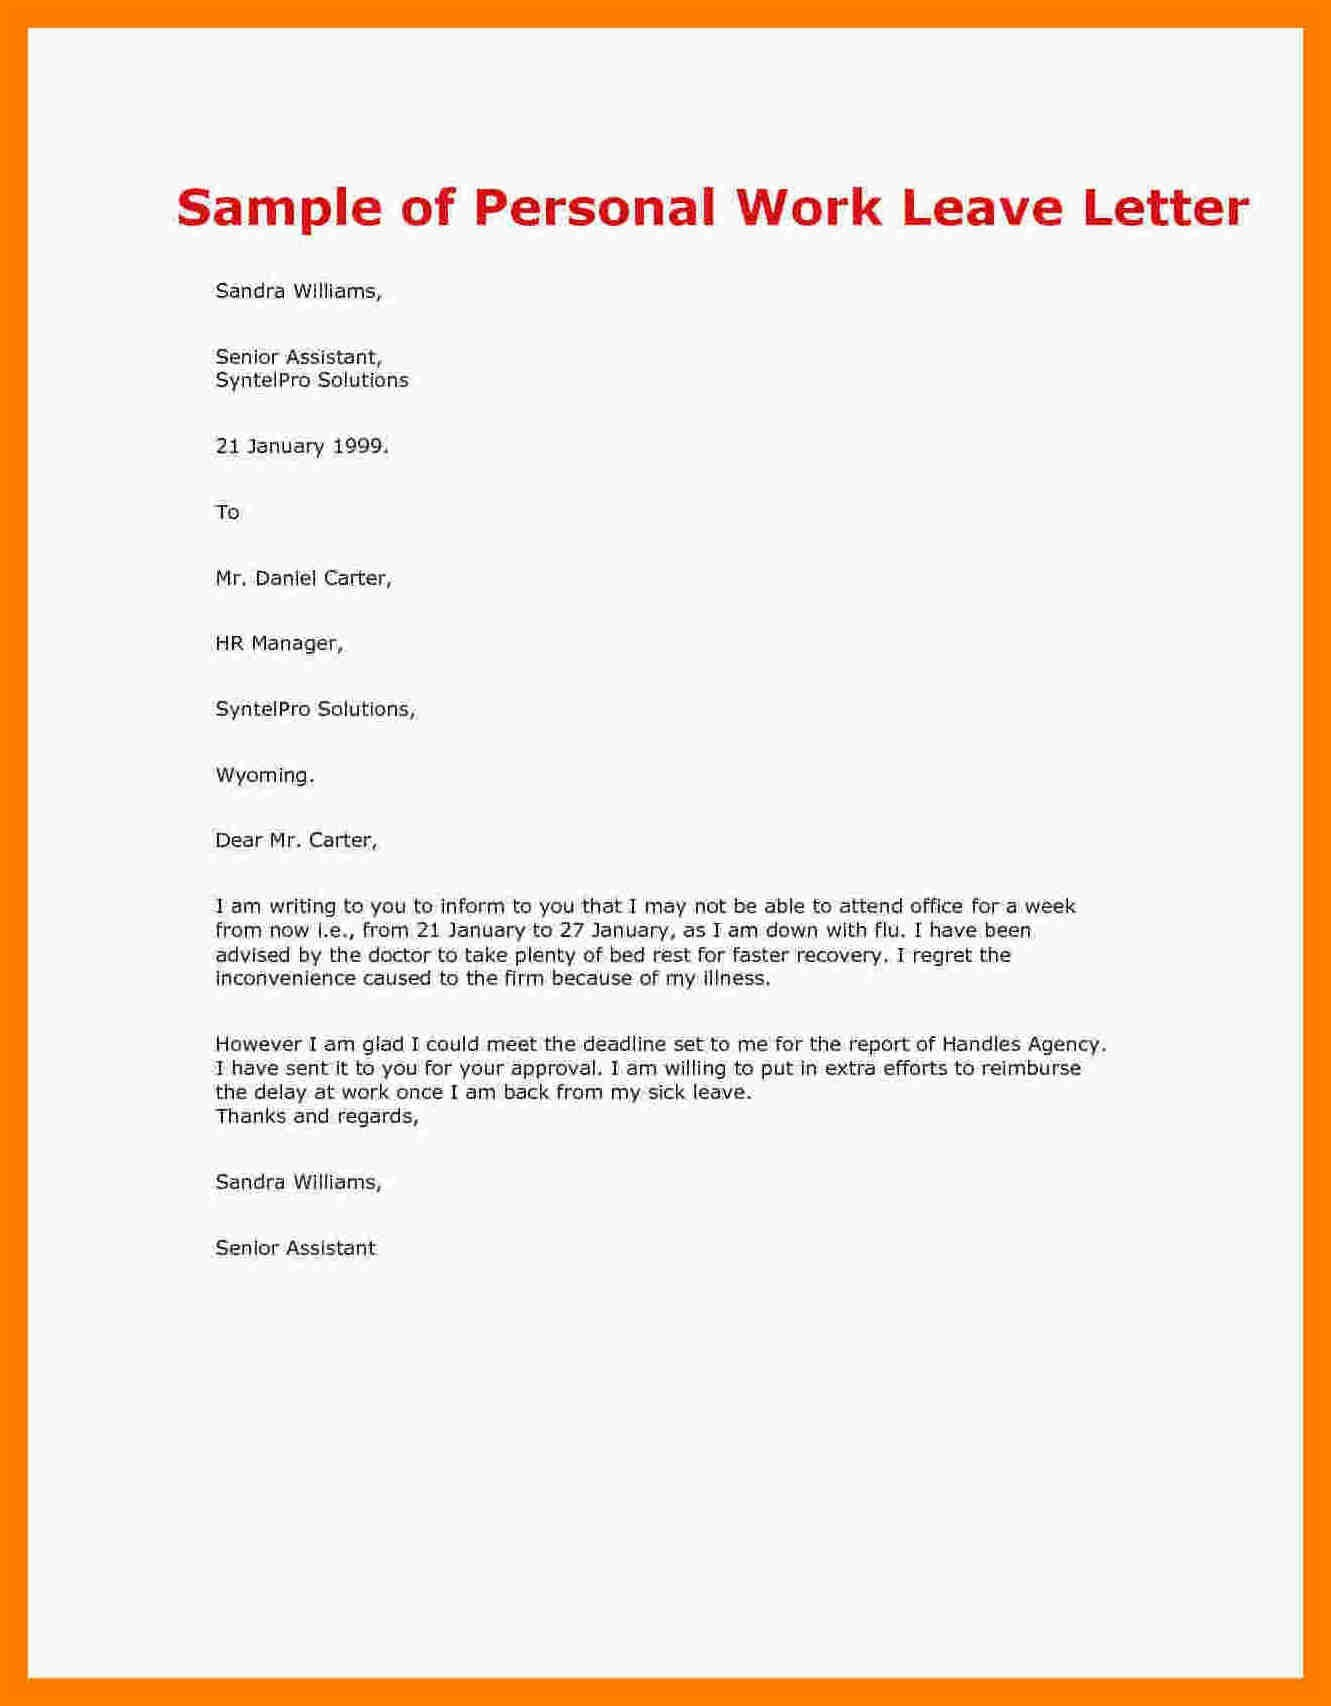 Maternity Return to Work Letter From Employer Template - Paternity Leave Letter Template Uk Fresh Returning to Work after